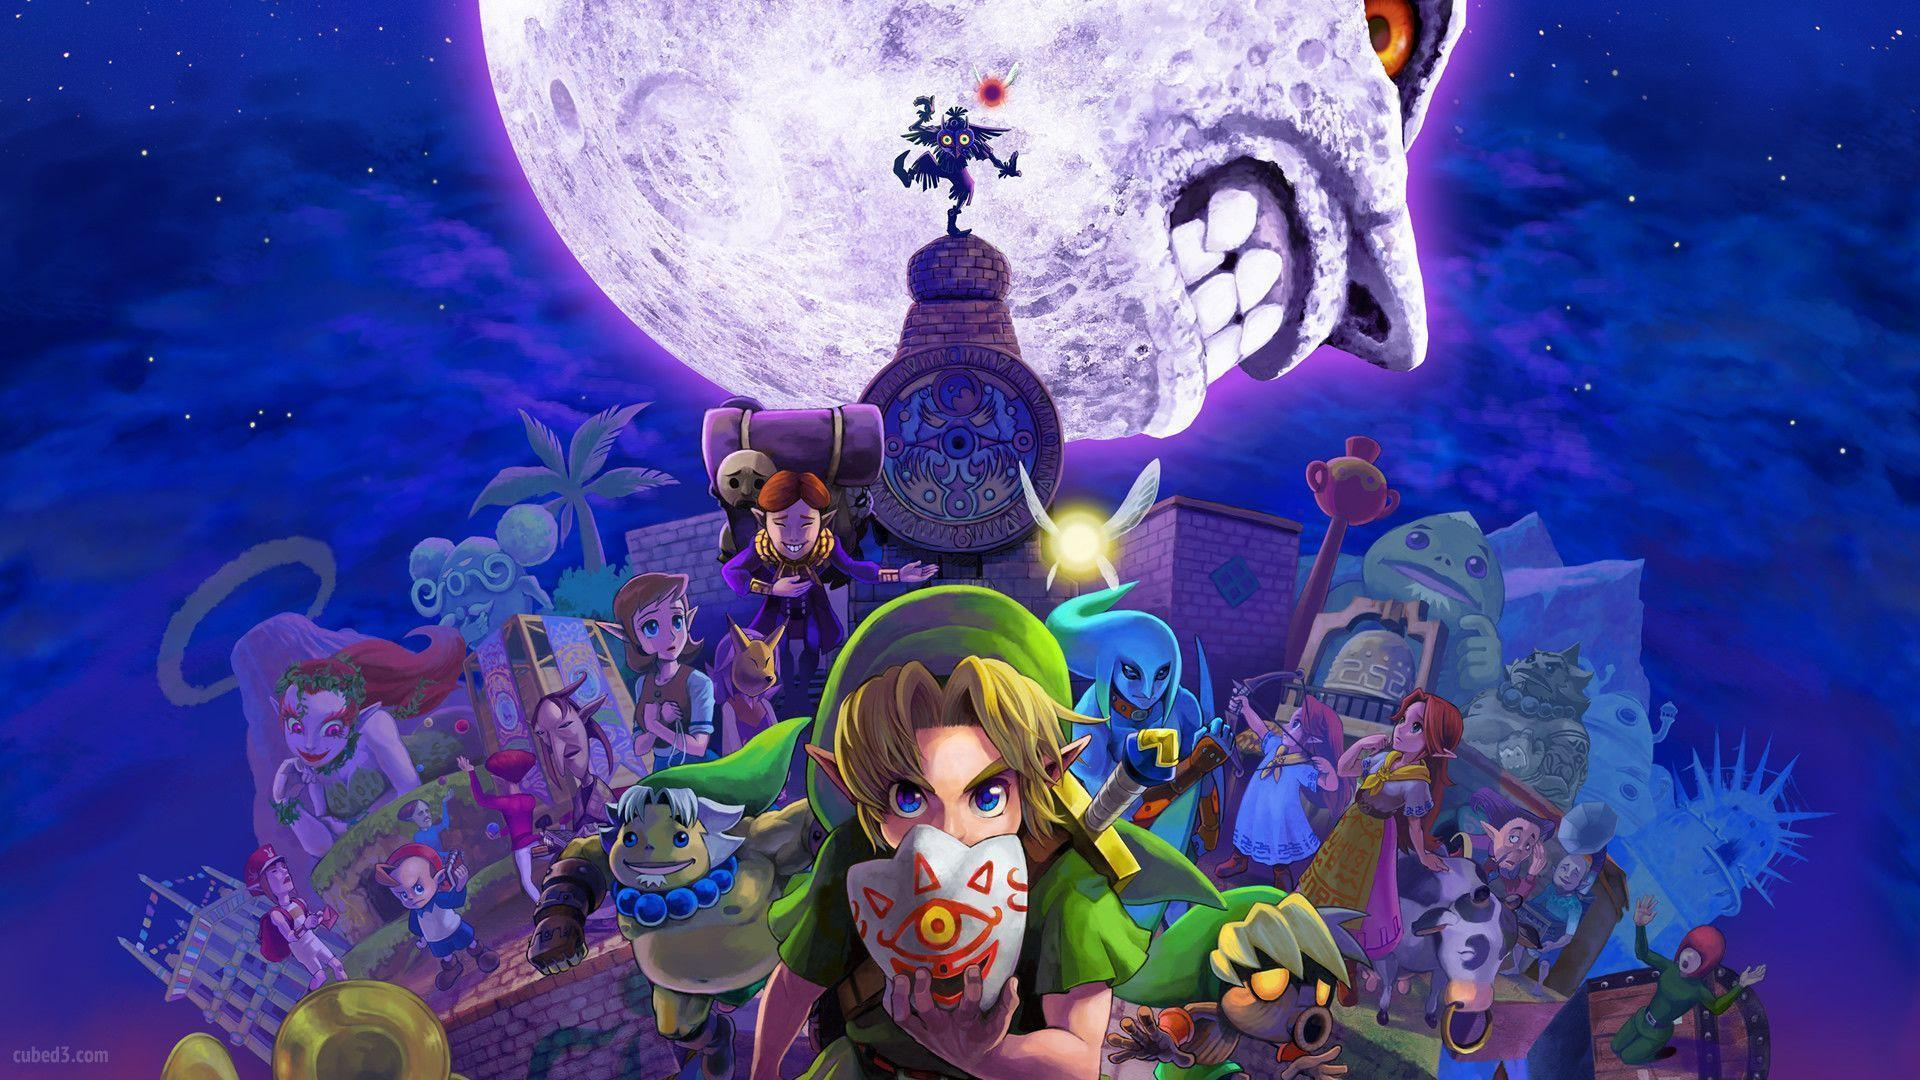 1 The Legend Of Zelda: Majora&Mask 3D HD Wallpapers